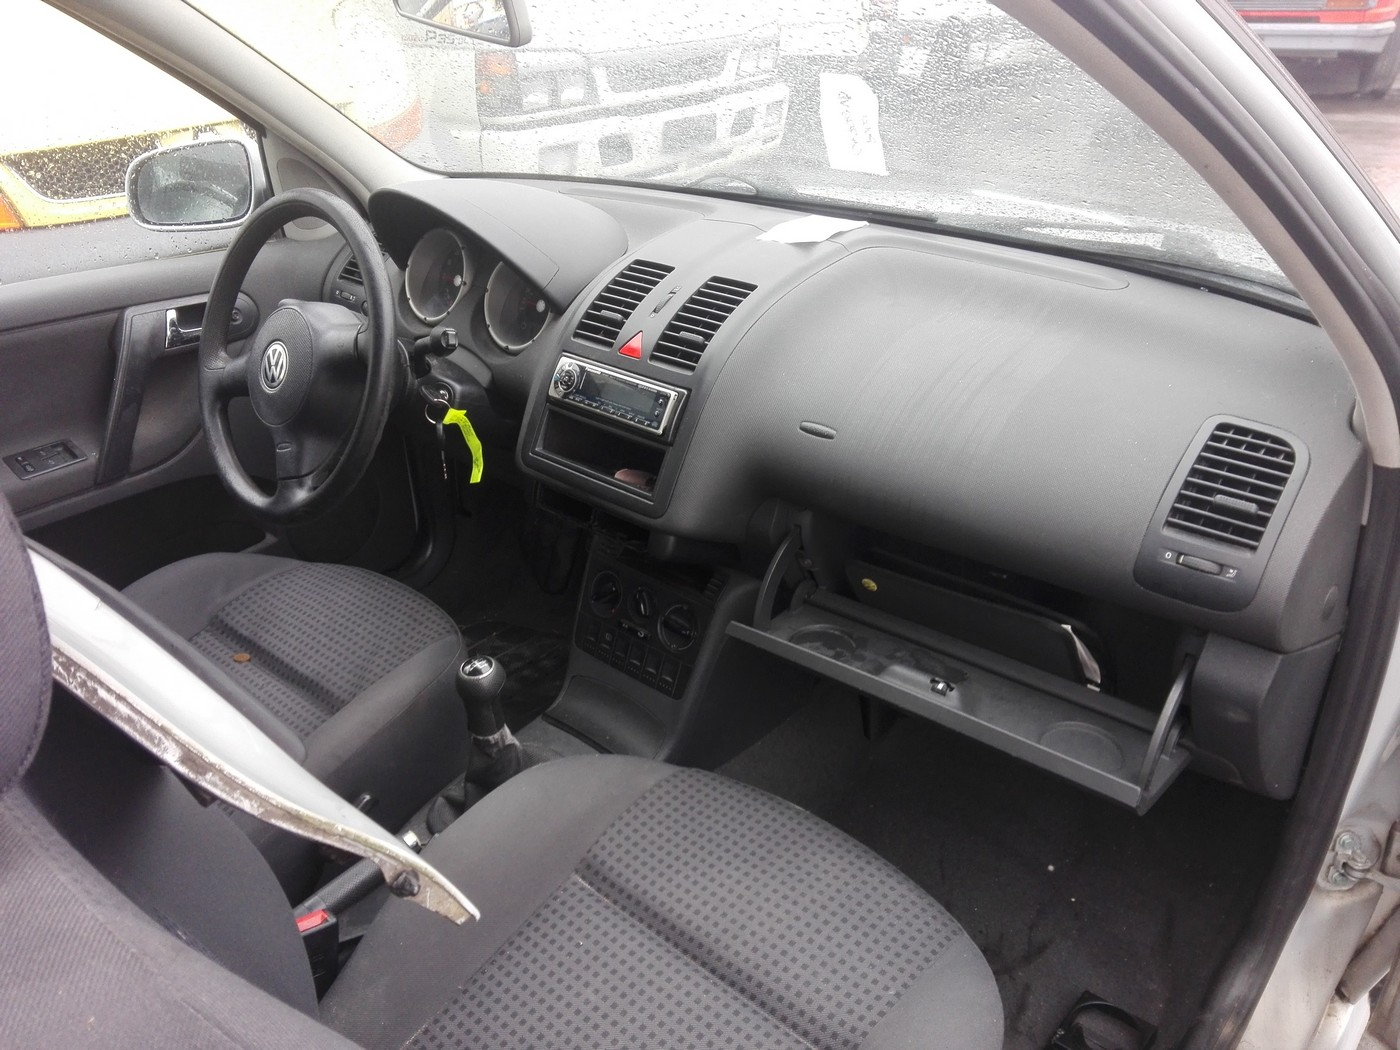 Volkswagen polo 6n2 1.4mpi tip mot aud an 2001